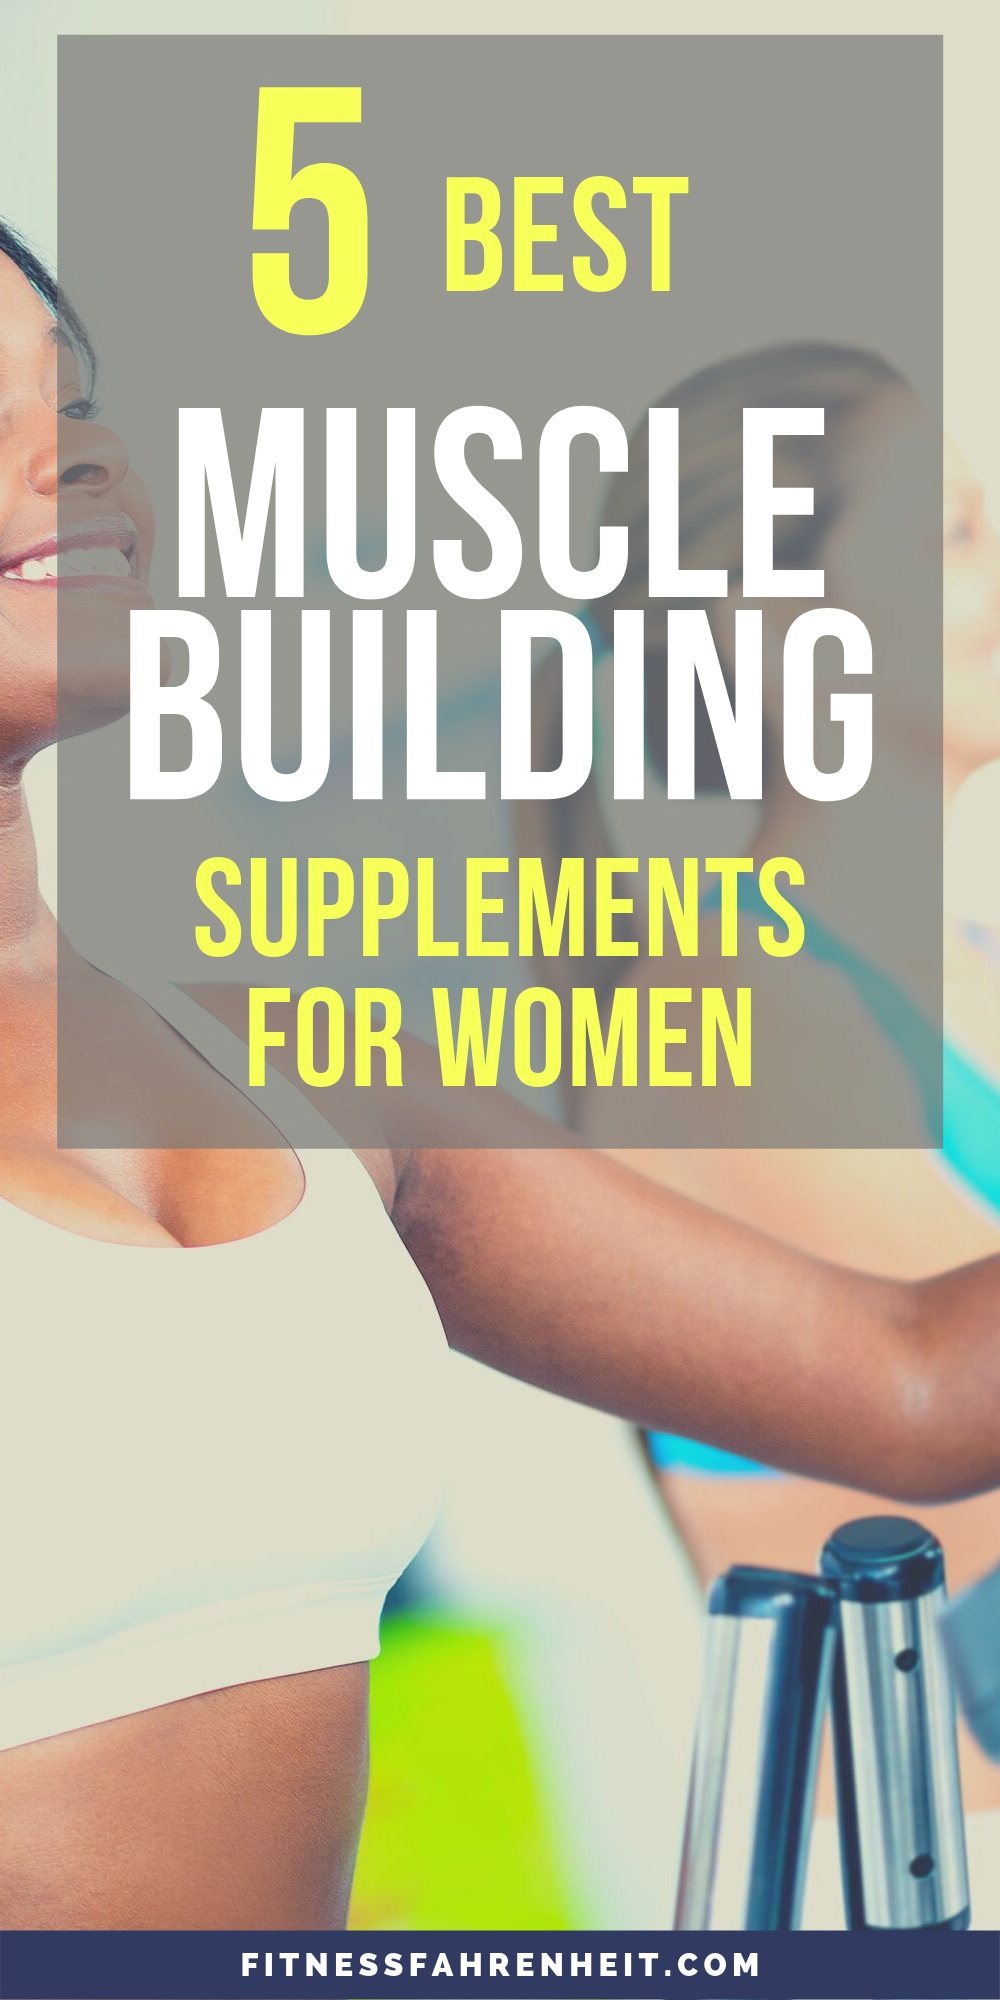 Top 5 Muscle Building Supplements For Women - Women's Fitness_